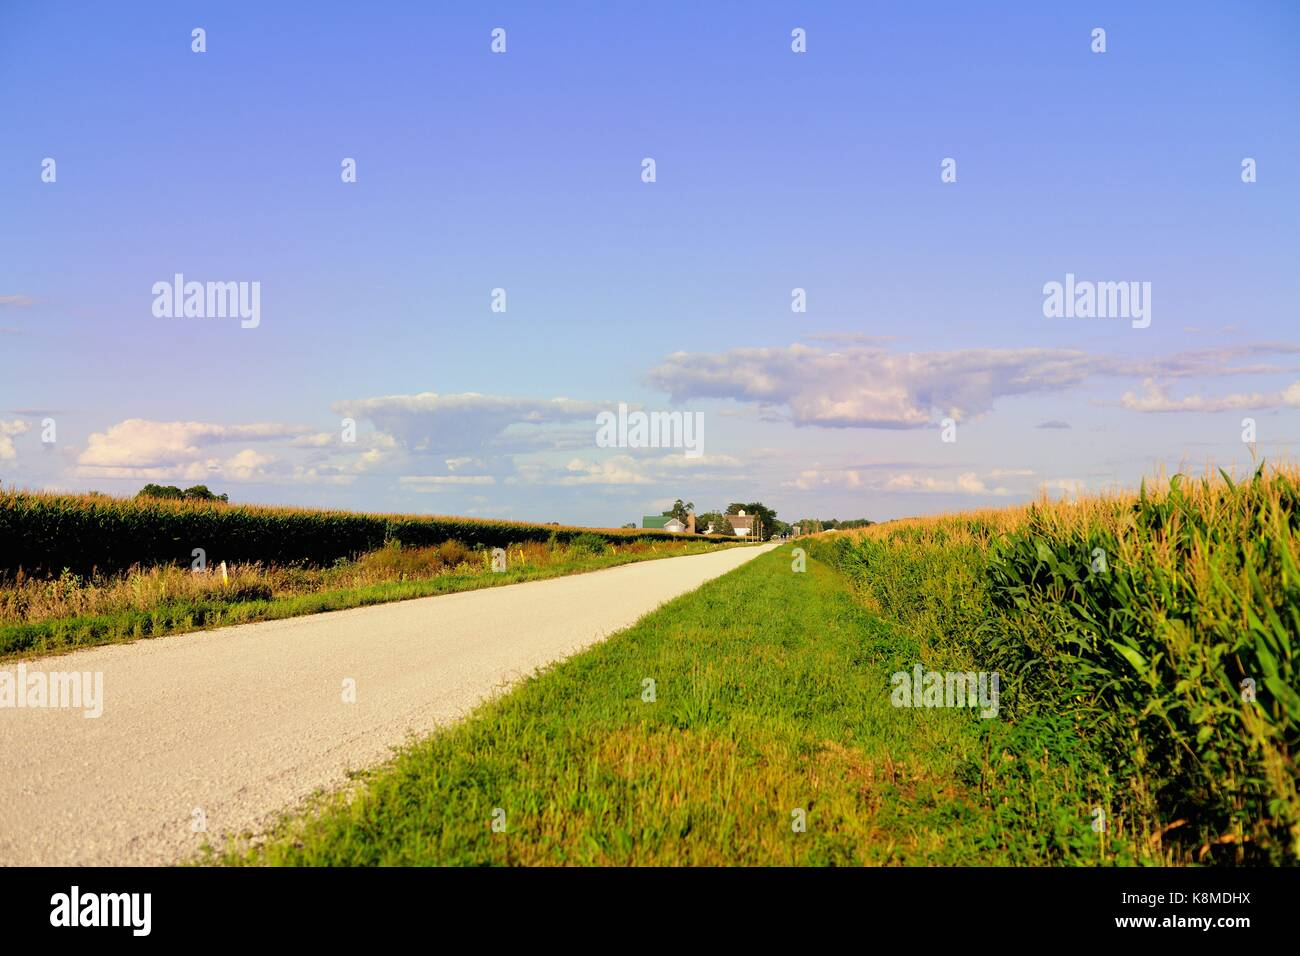 A dirt road bordered on both sides by mature corn crops in rural Illinois near Somonauk, Illinois, USA. - Stock Image